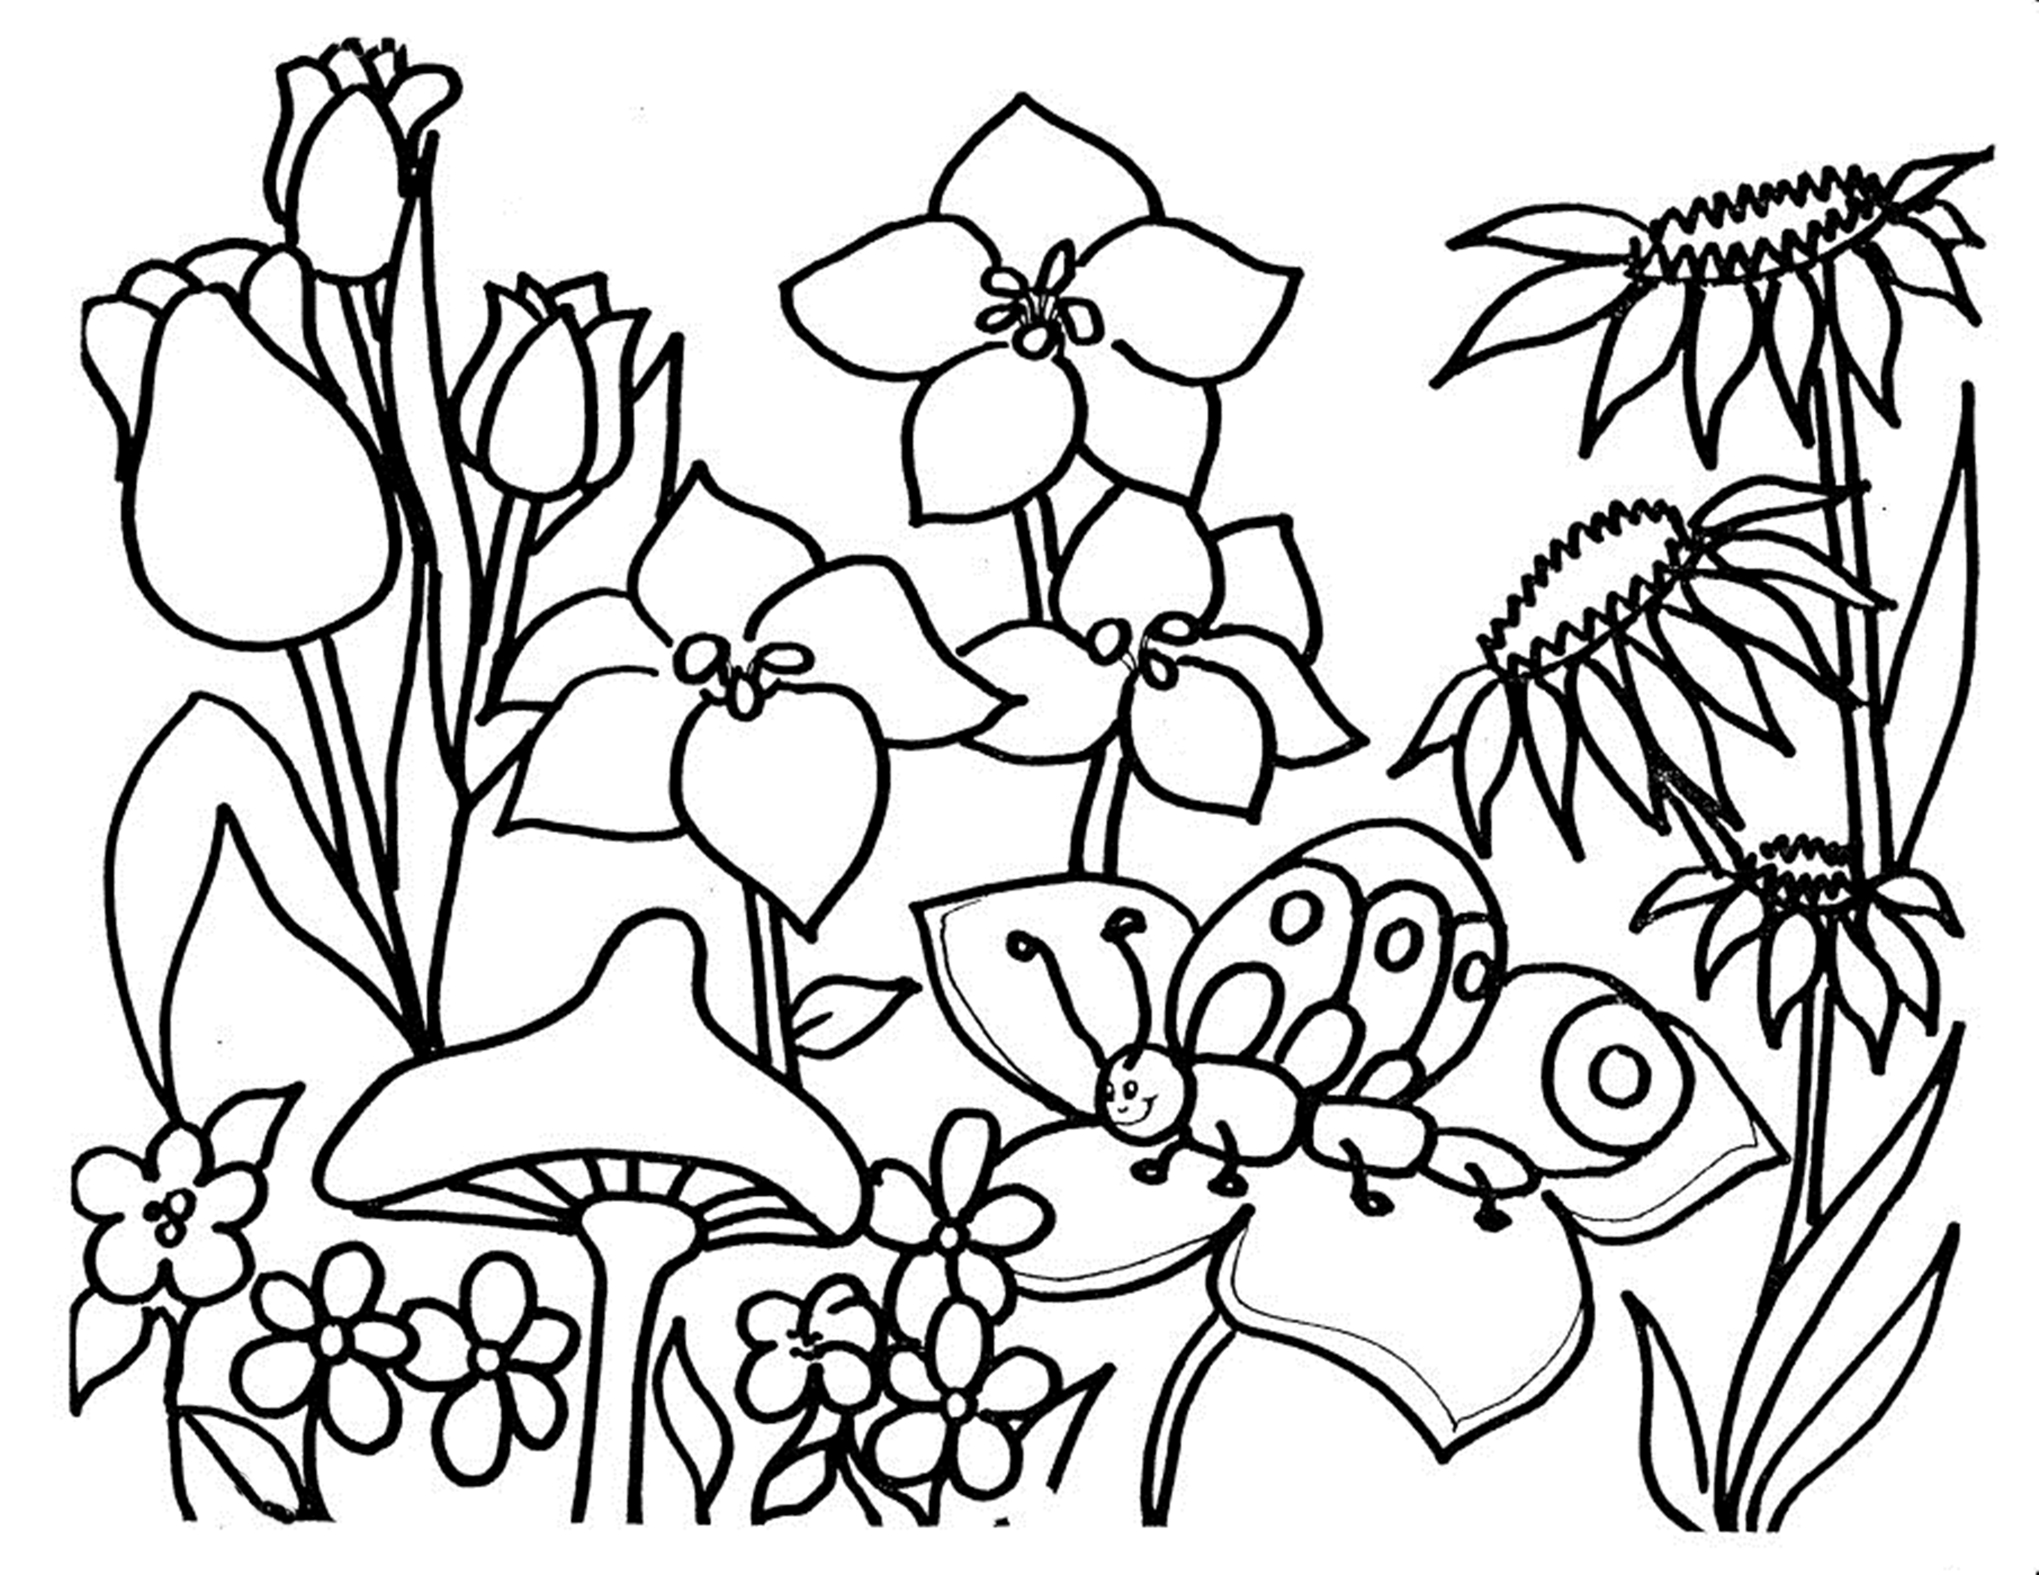 coloring pages printable flowers - photo#31